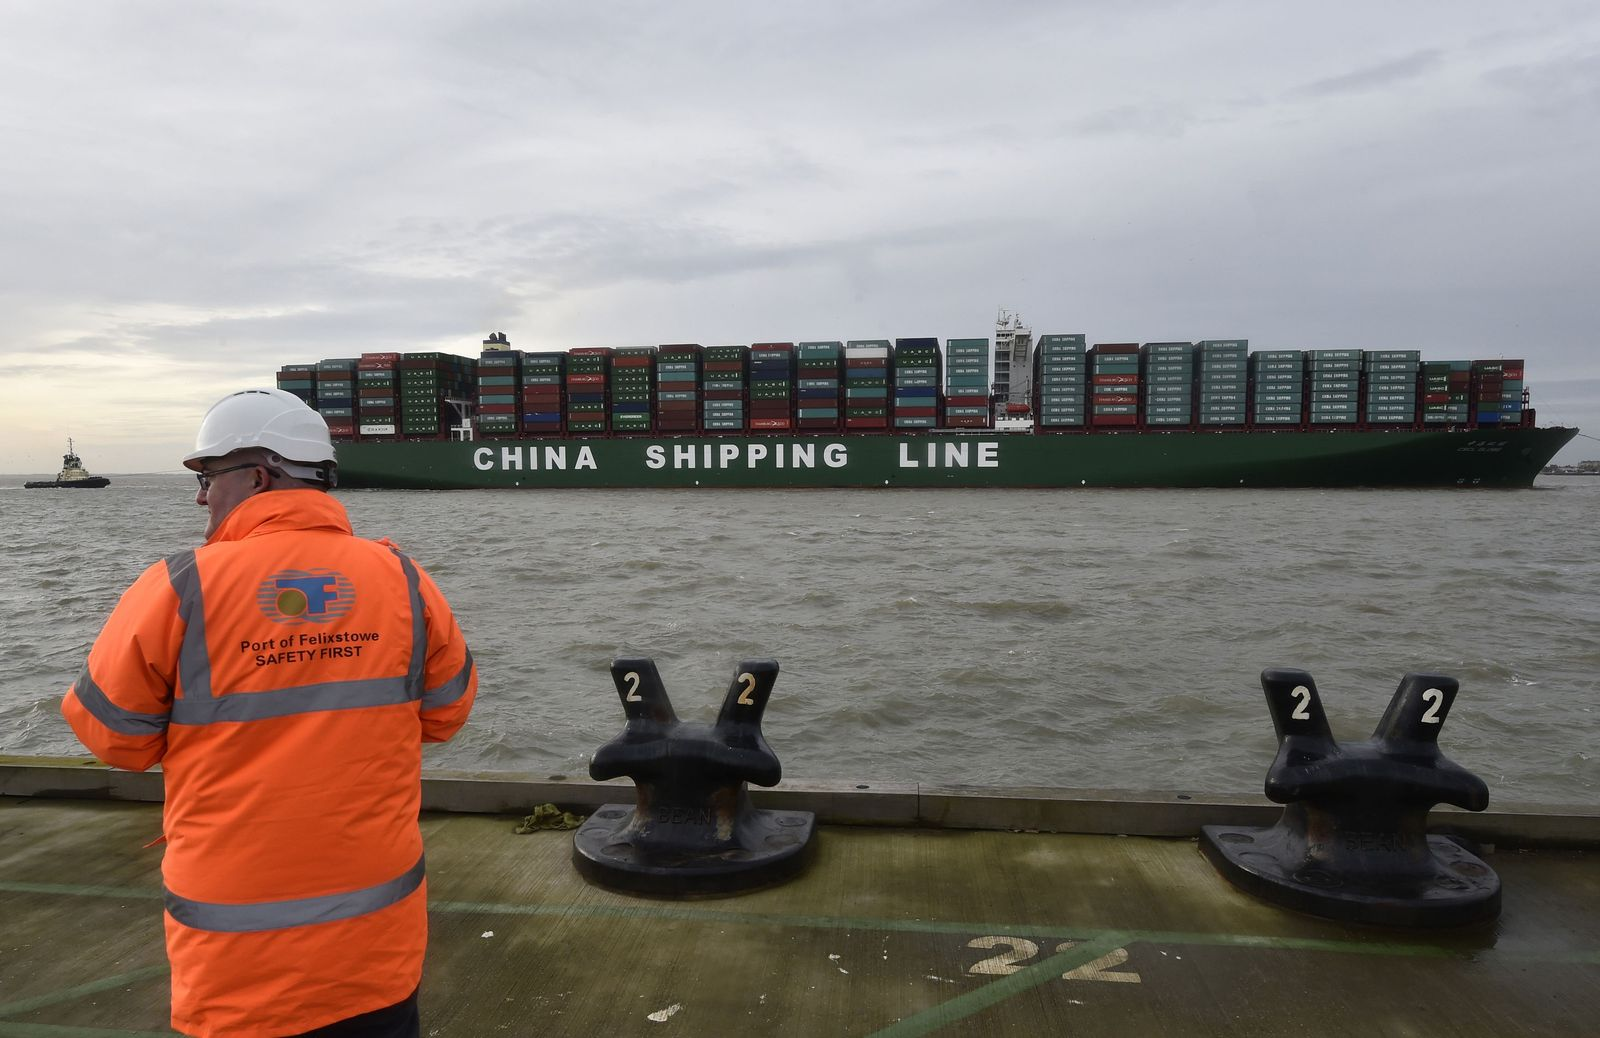 CSCL Globe / Containerschiff